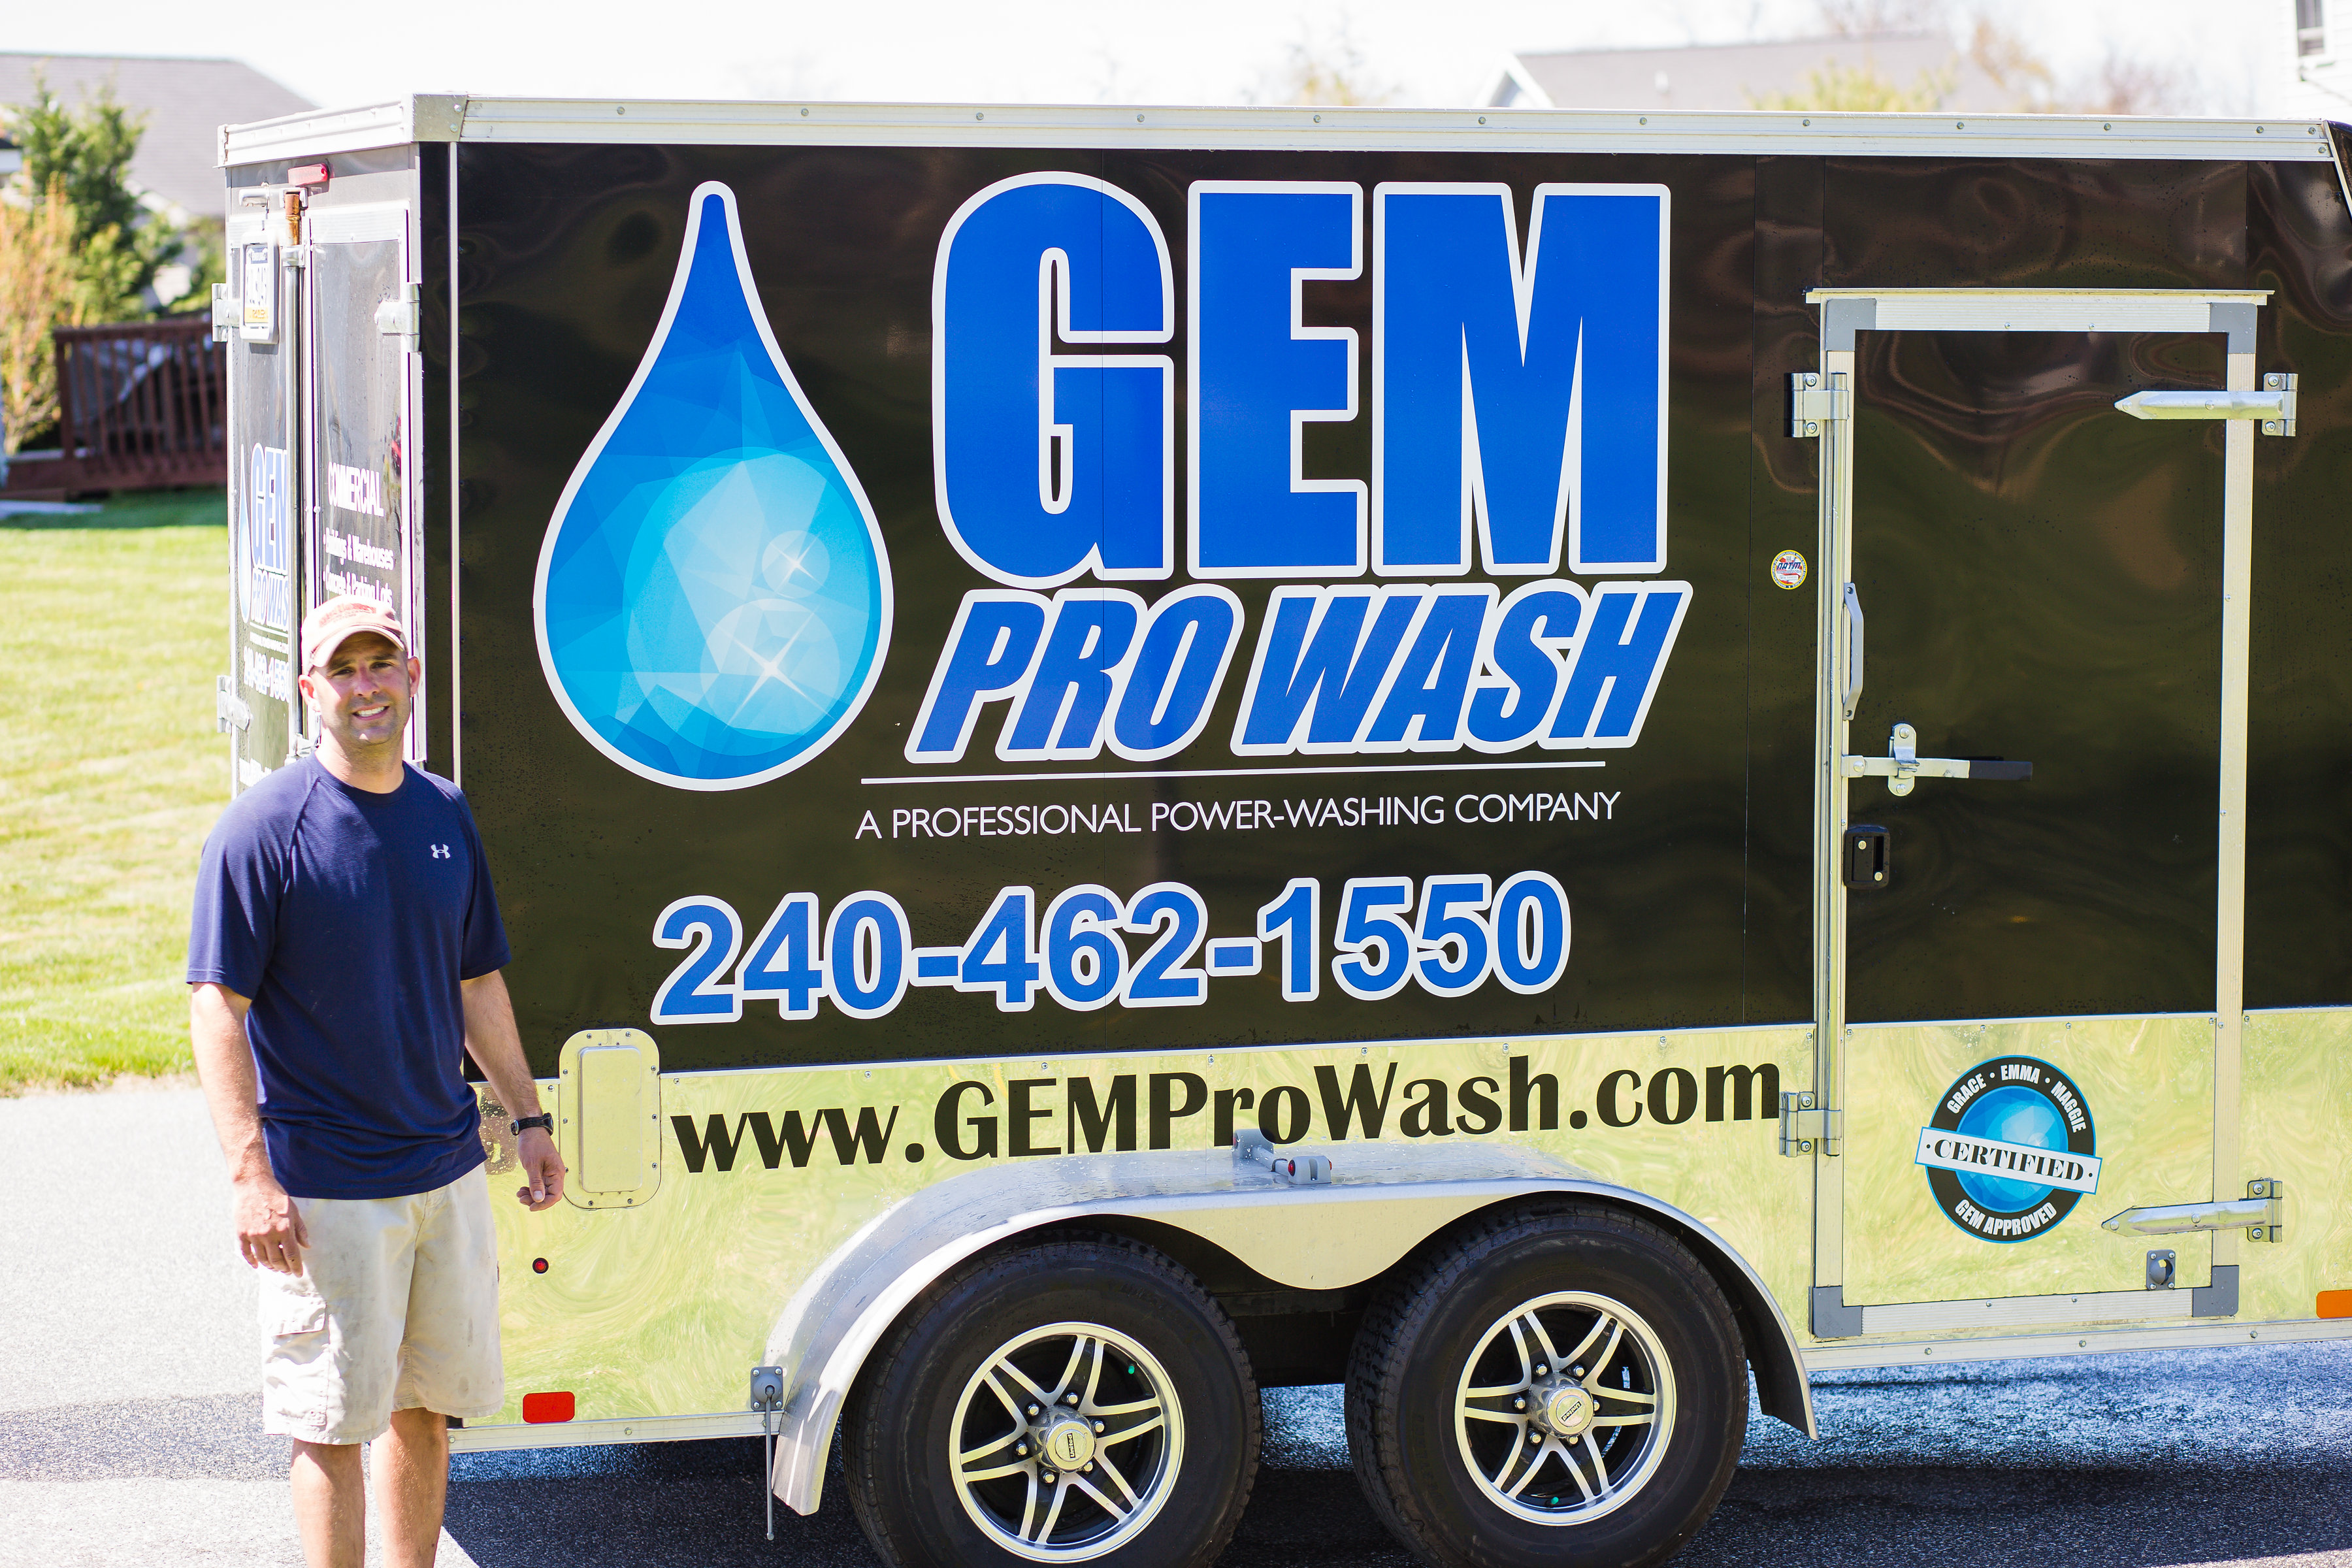 Gem Pro Wash | Soft Wash Roof Service in Waynesboro PA